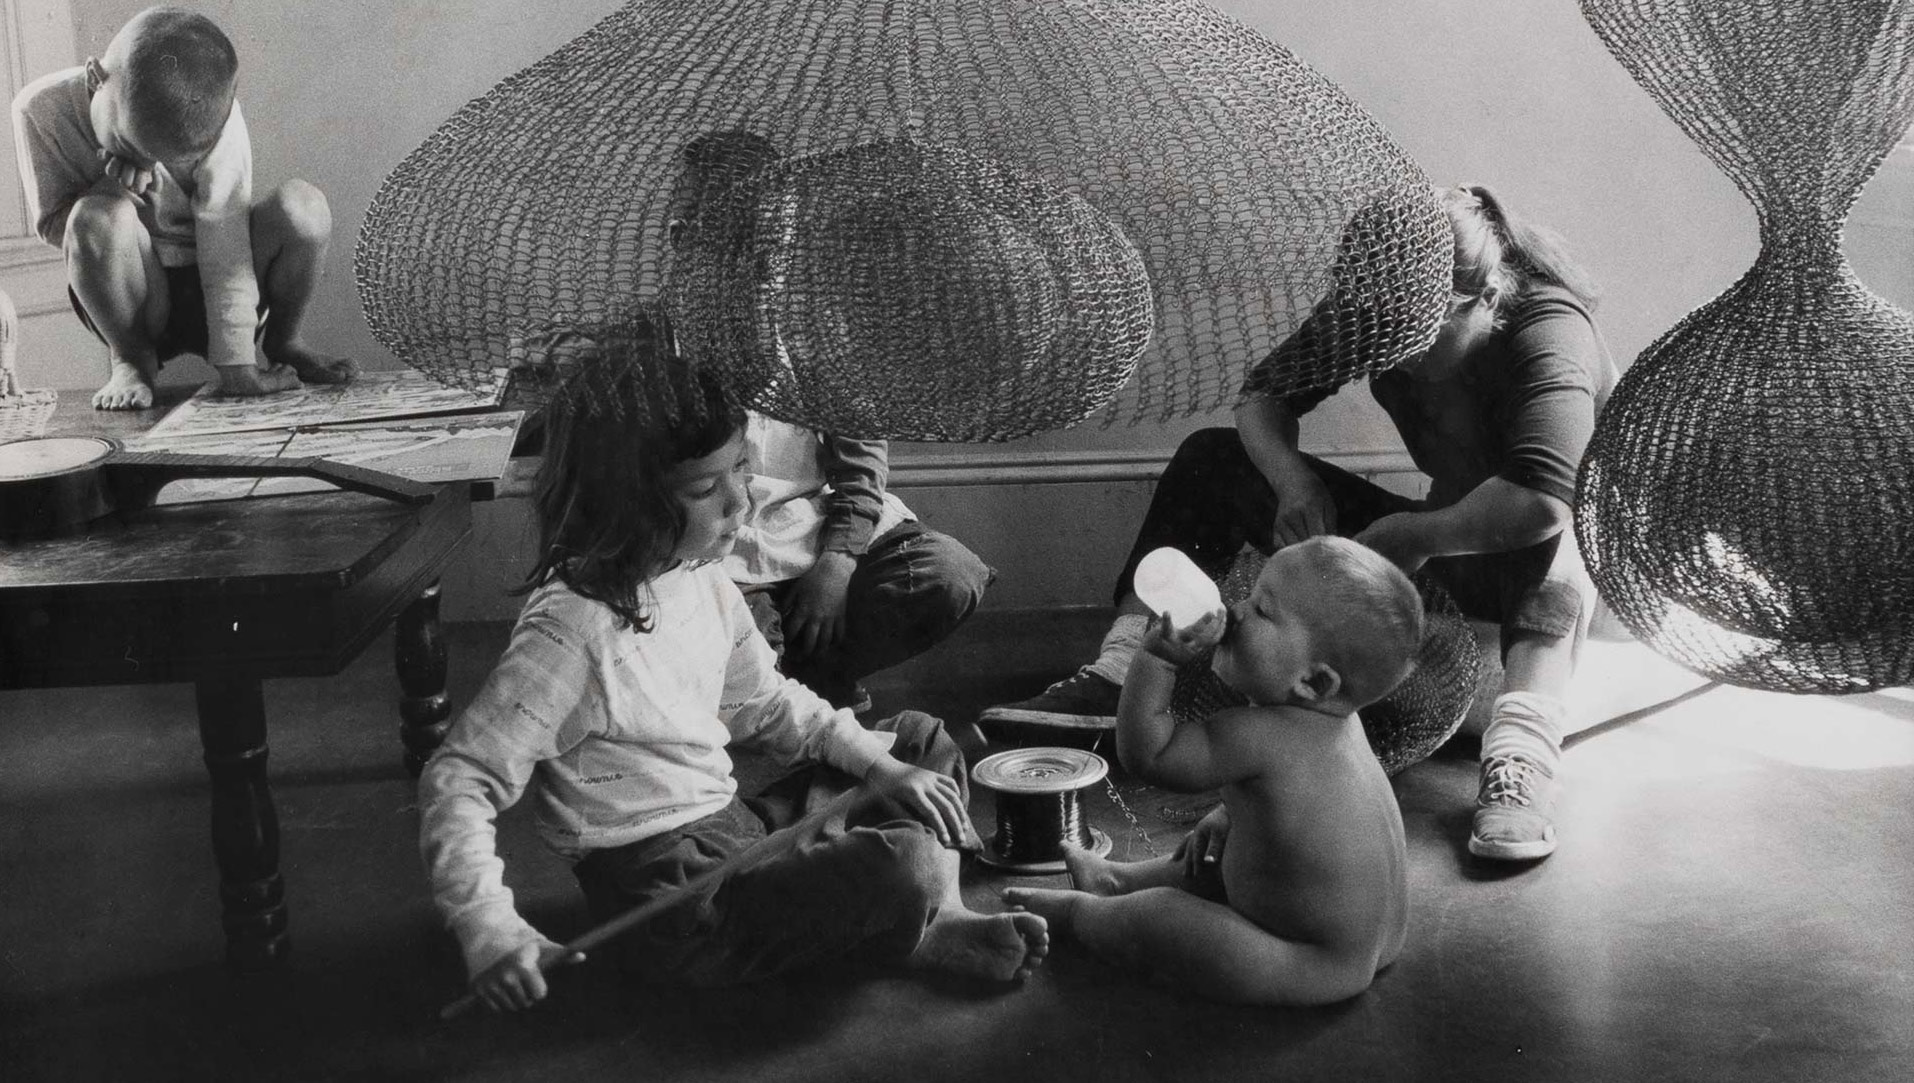 A photo of Ruth Asawa and her children, dated 1957. Photo by Imogen Cunningham.